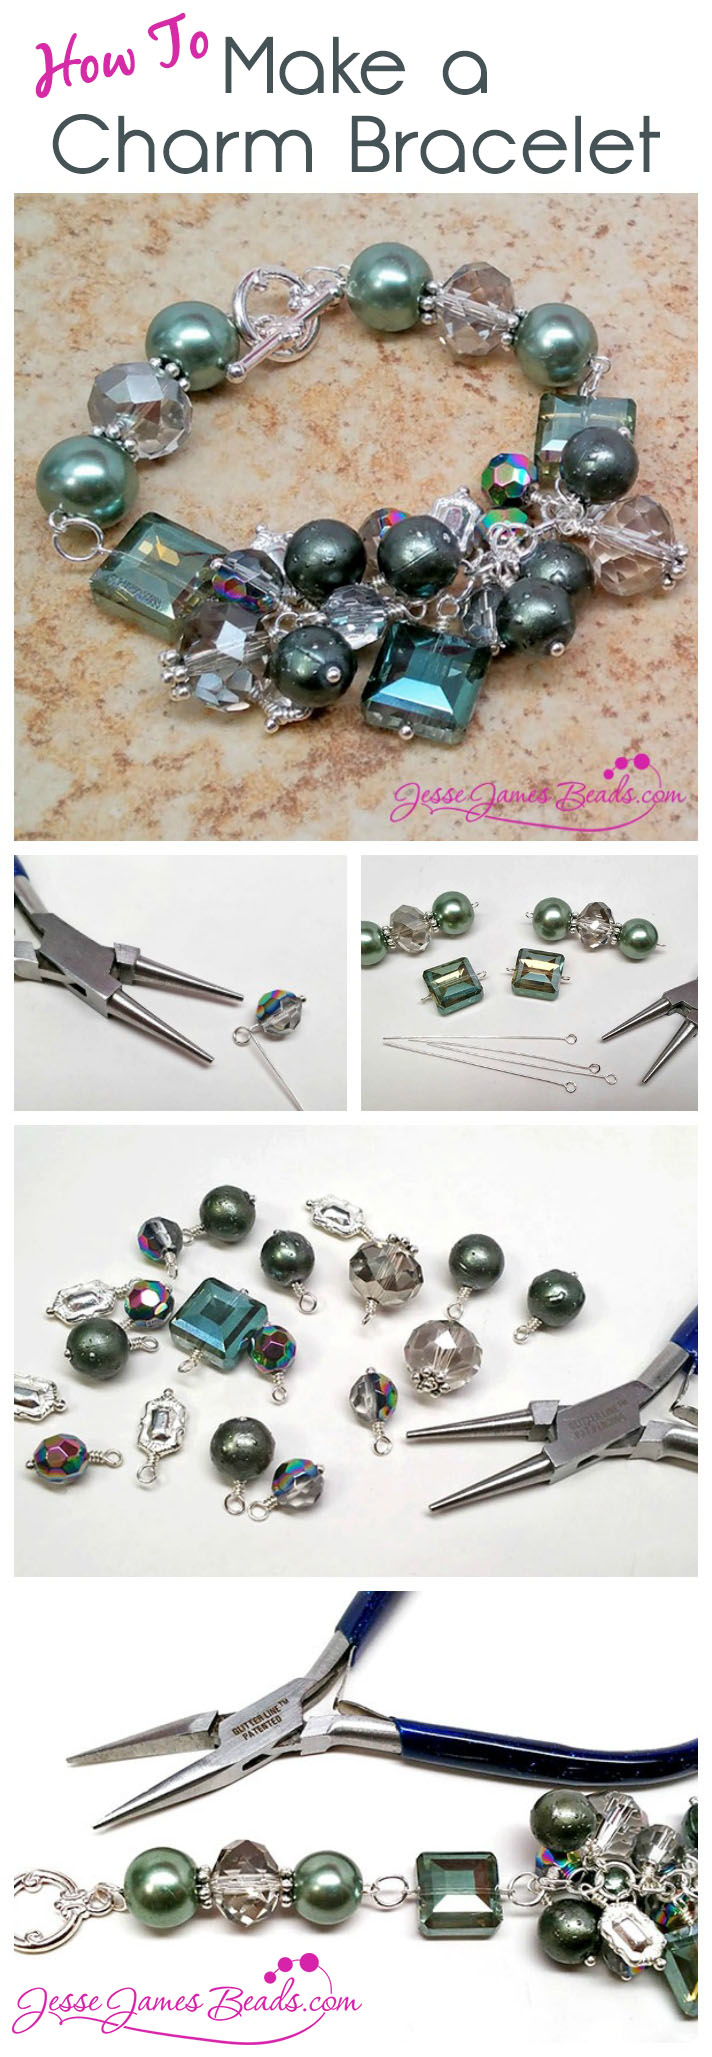 How to Make a Charm Bracelet with Sage Green Beads from Jesse James Beads